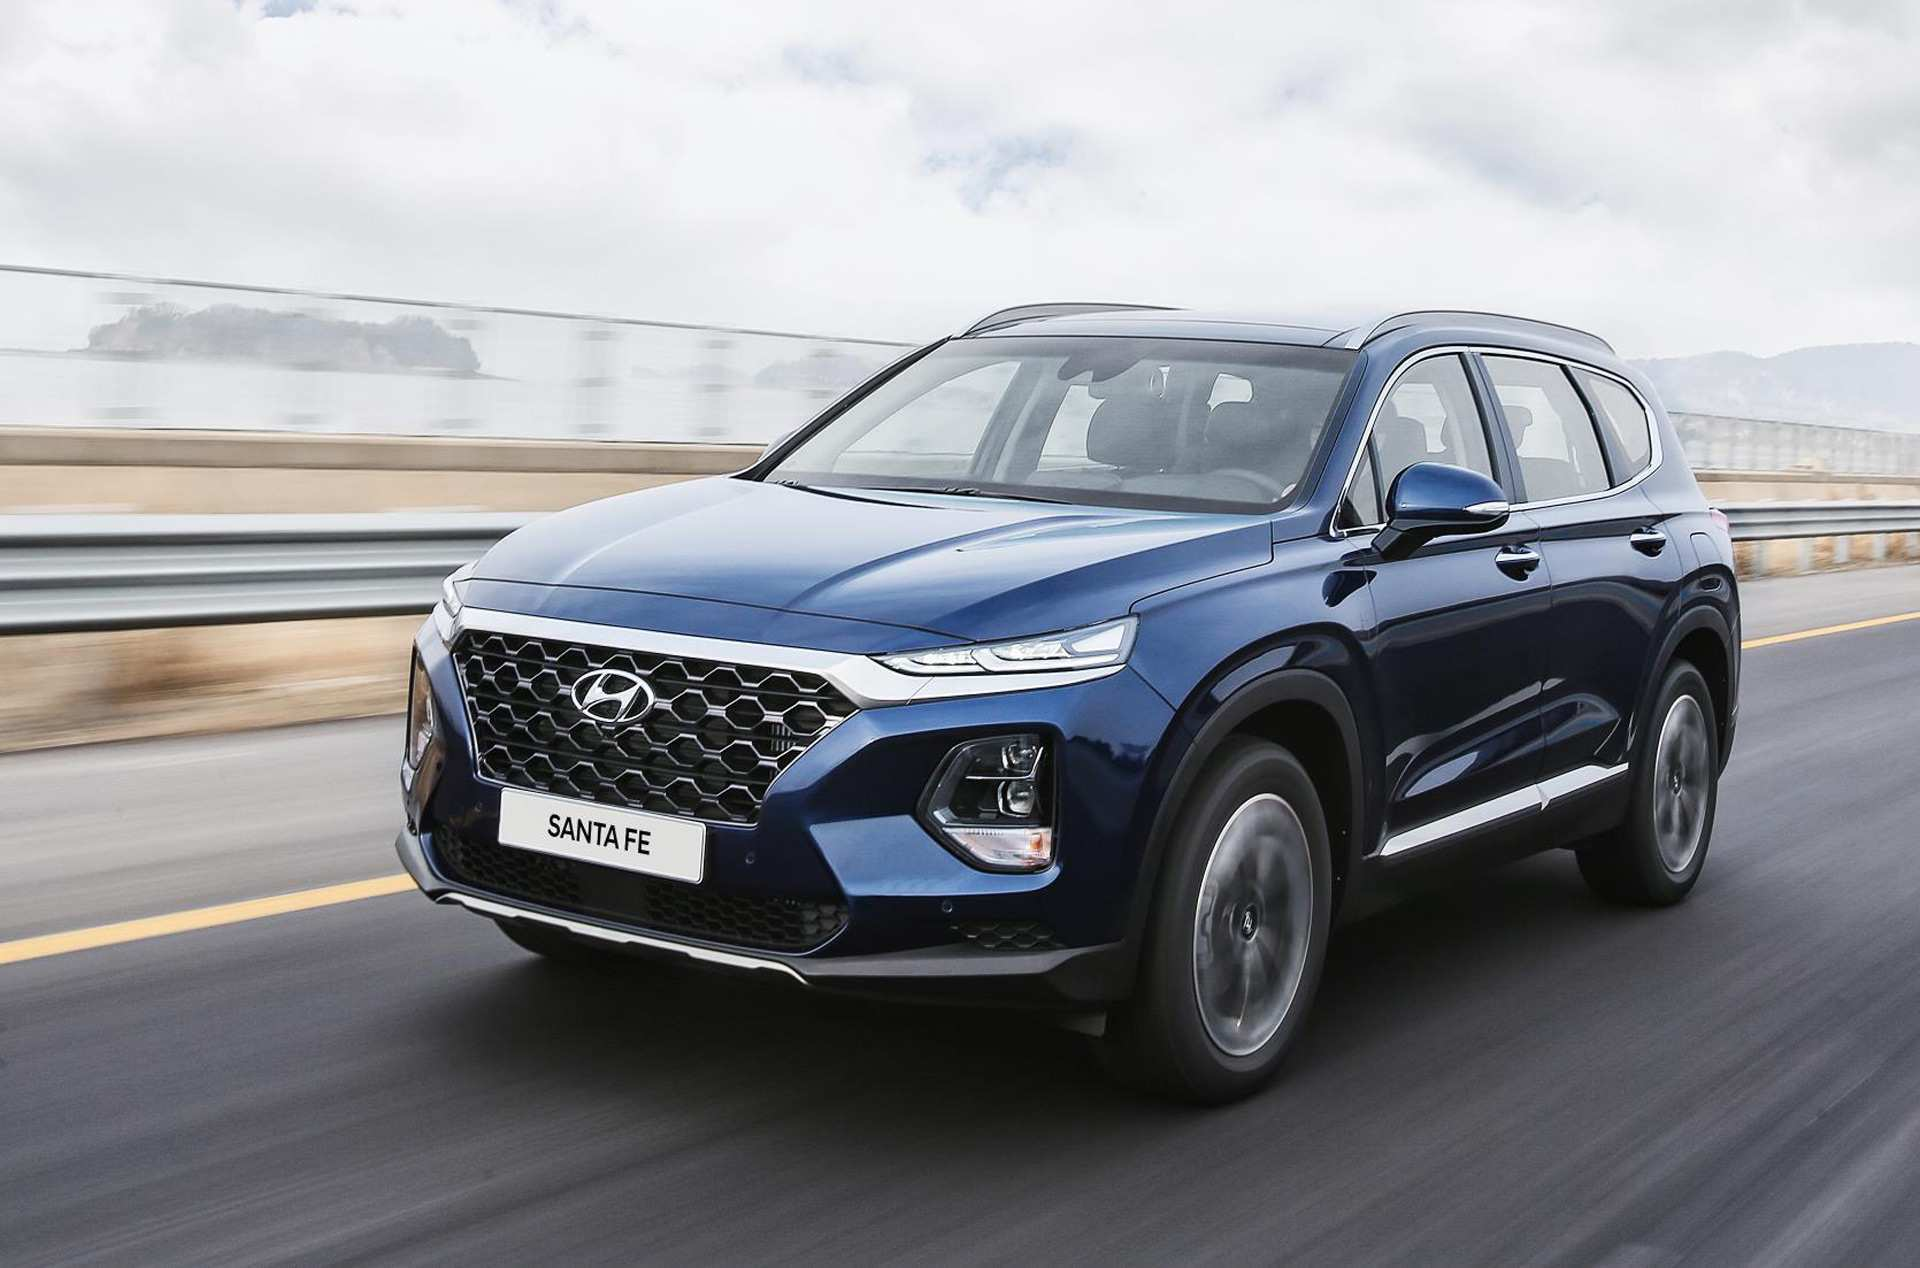 43 Concept of 2020 Santa Fe Sports Overview for 2020 Santa Fe Sports